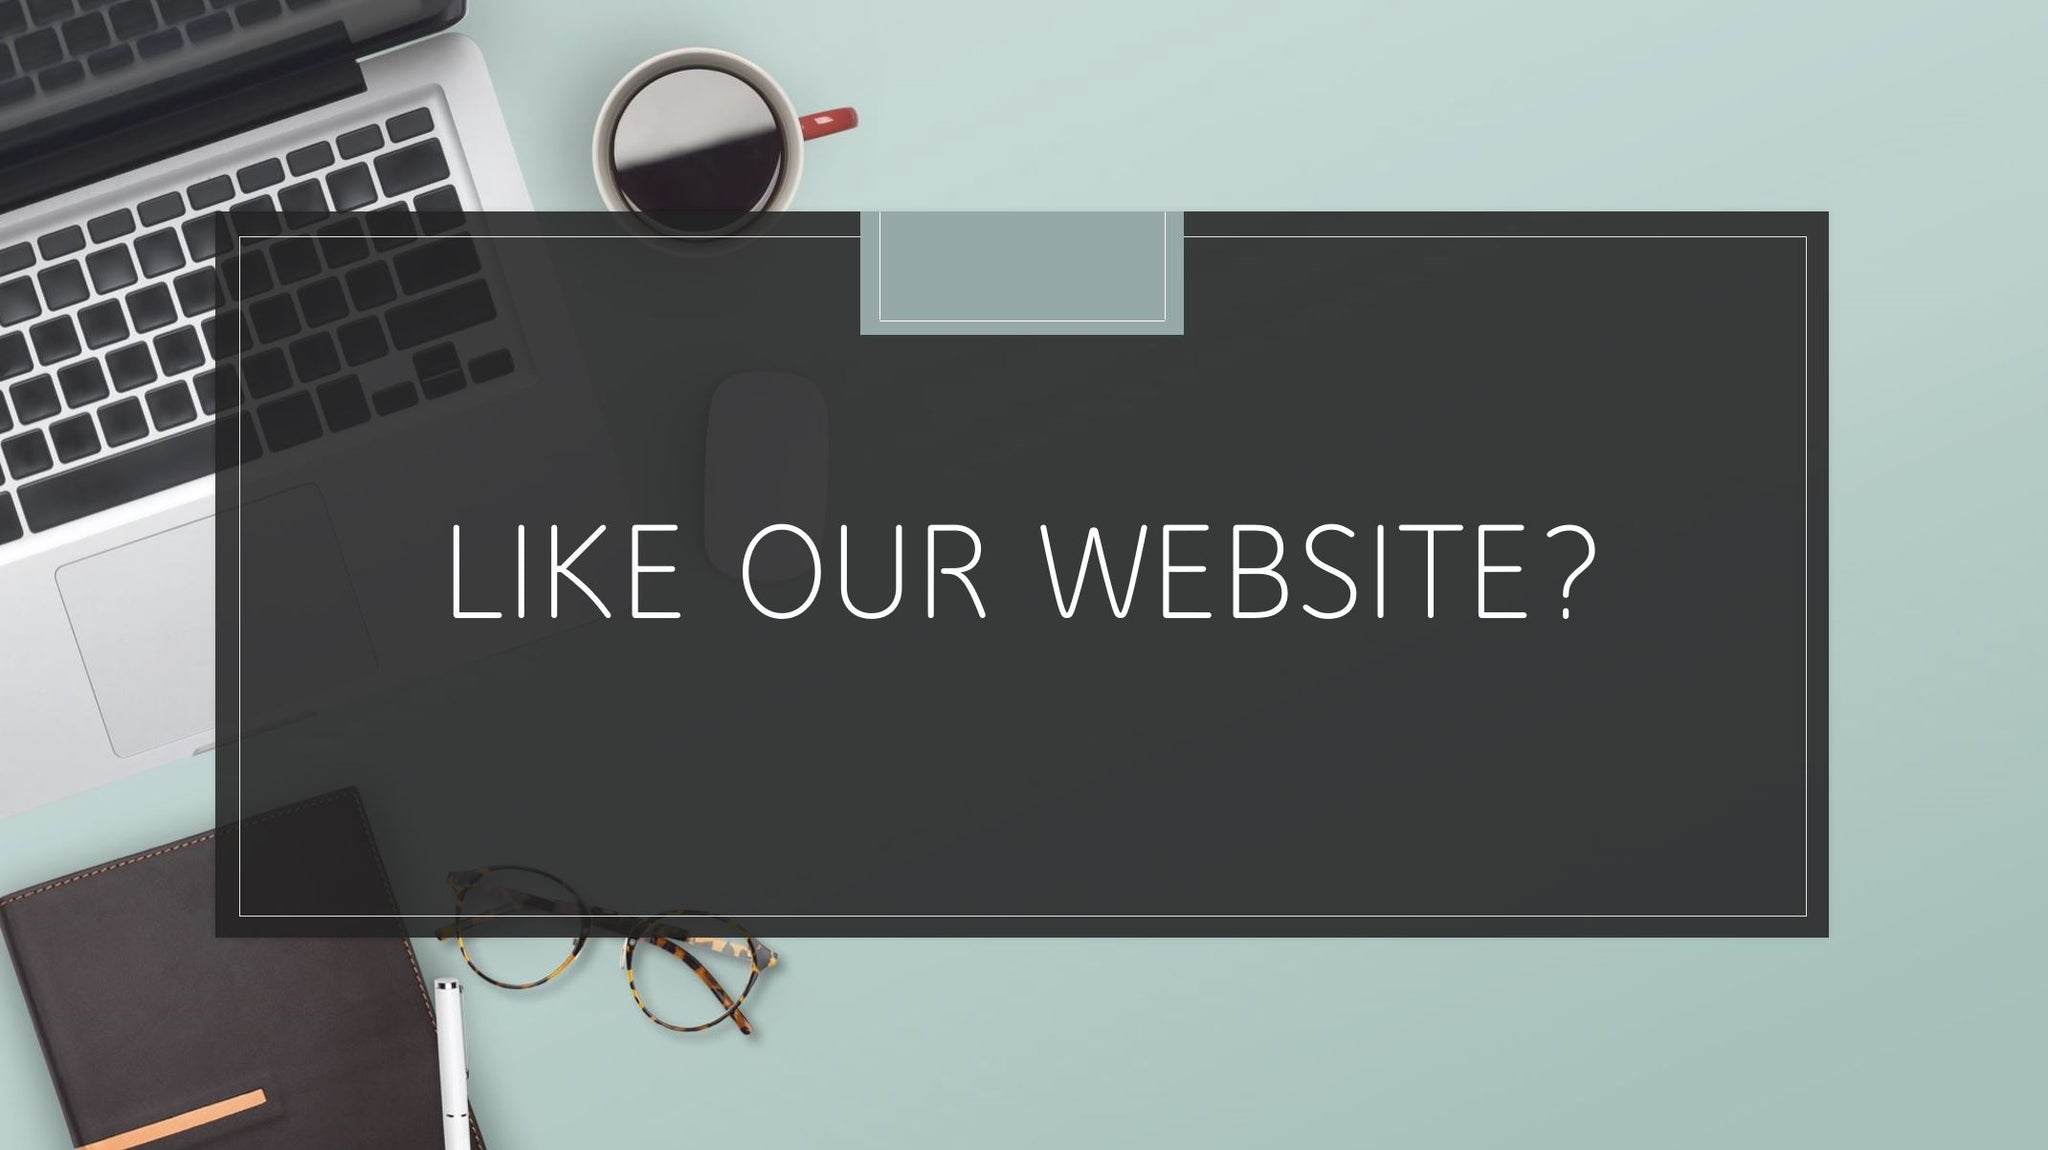 Like our website